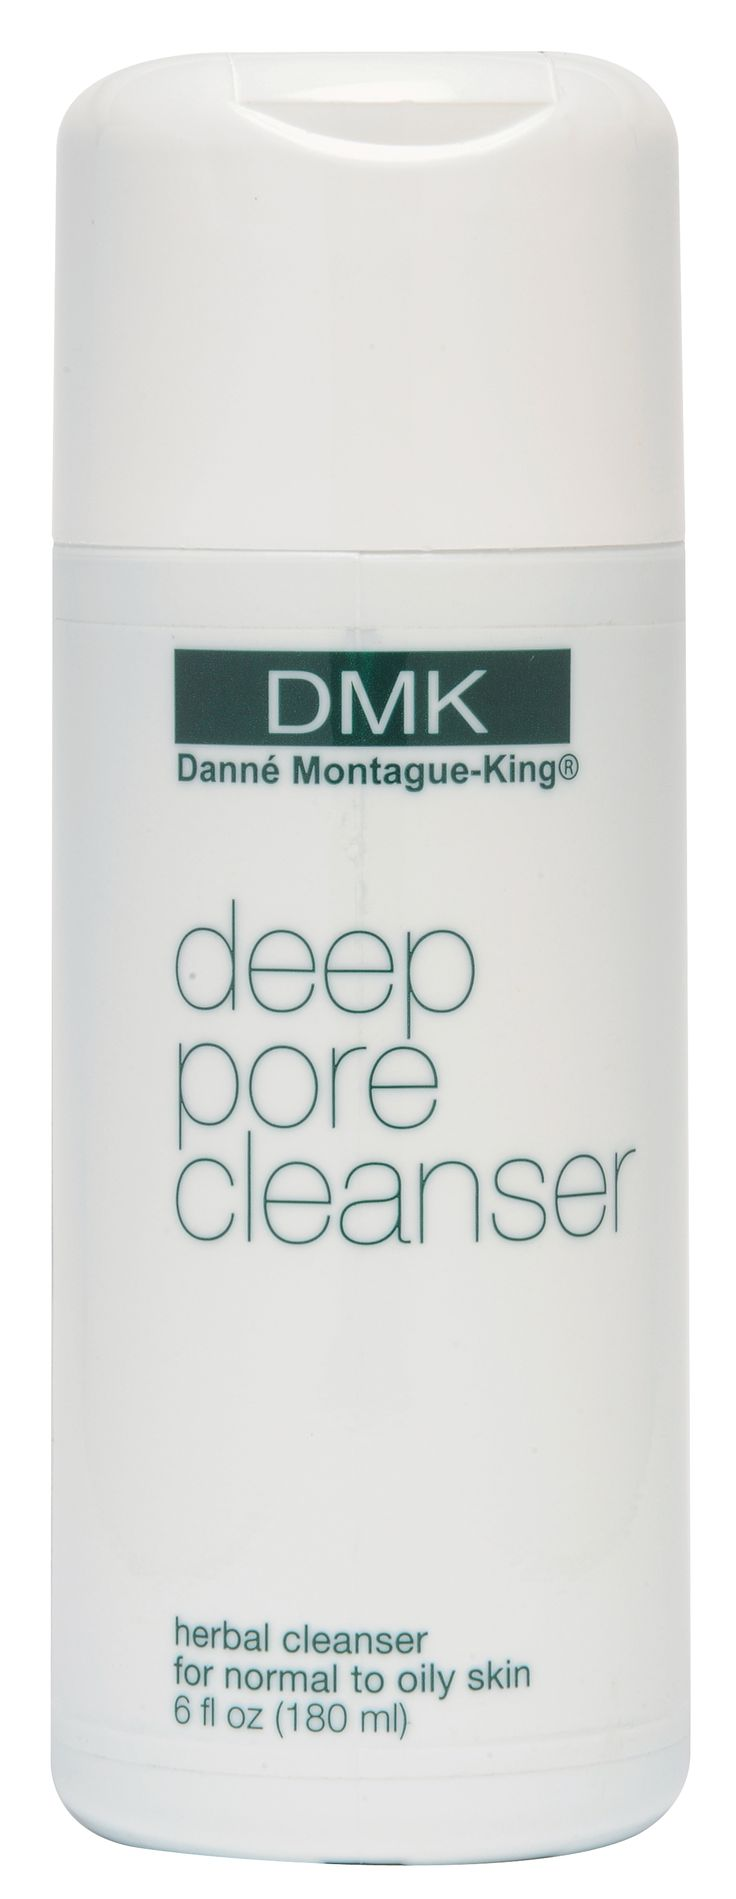 DMK - Deep Pore Cleanser - Recommended for normal to oily skin, Deep Pore Cleanser is a botanical, non-alkaline cleanser that is designed to cleanse the skin without drying. Formulated with natural astringent and antibacterial ingredients, Deep Pore Cleanser flushes embedded impurities and helps keep the pores tight. May also be used as a shaving cream for men. Available in 180ml and 60ml sizes.